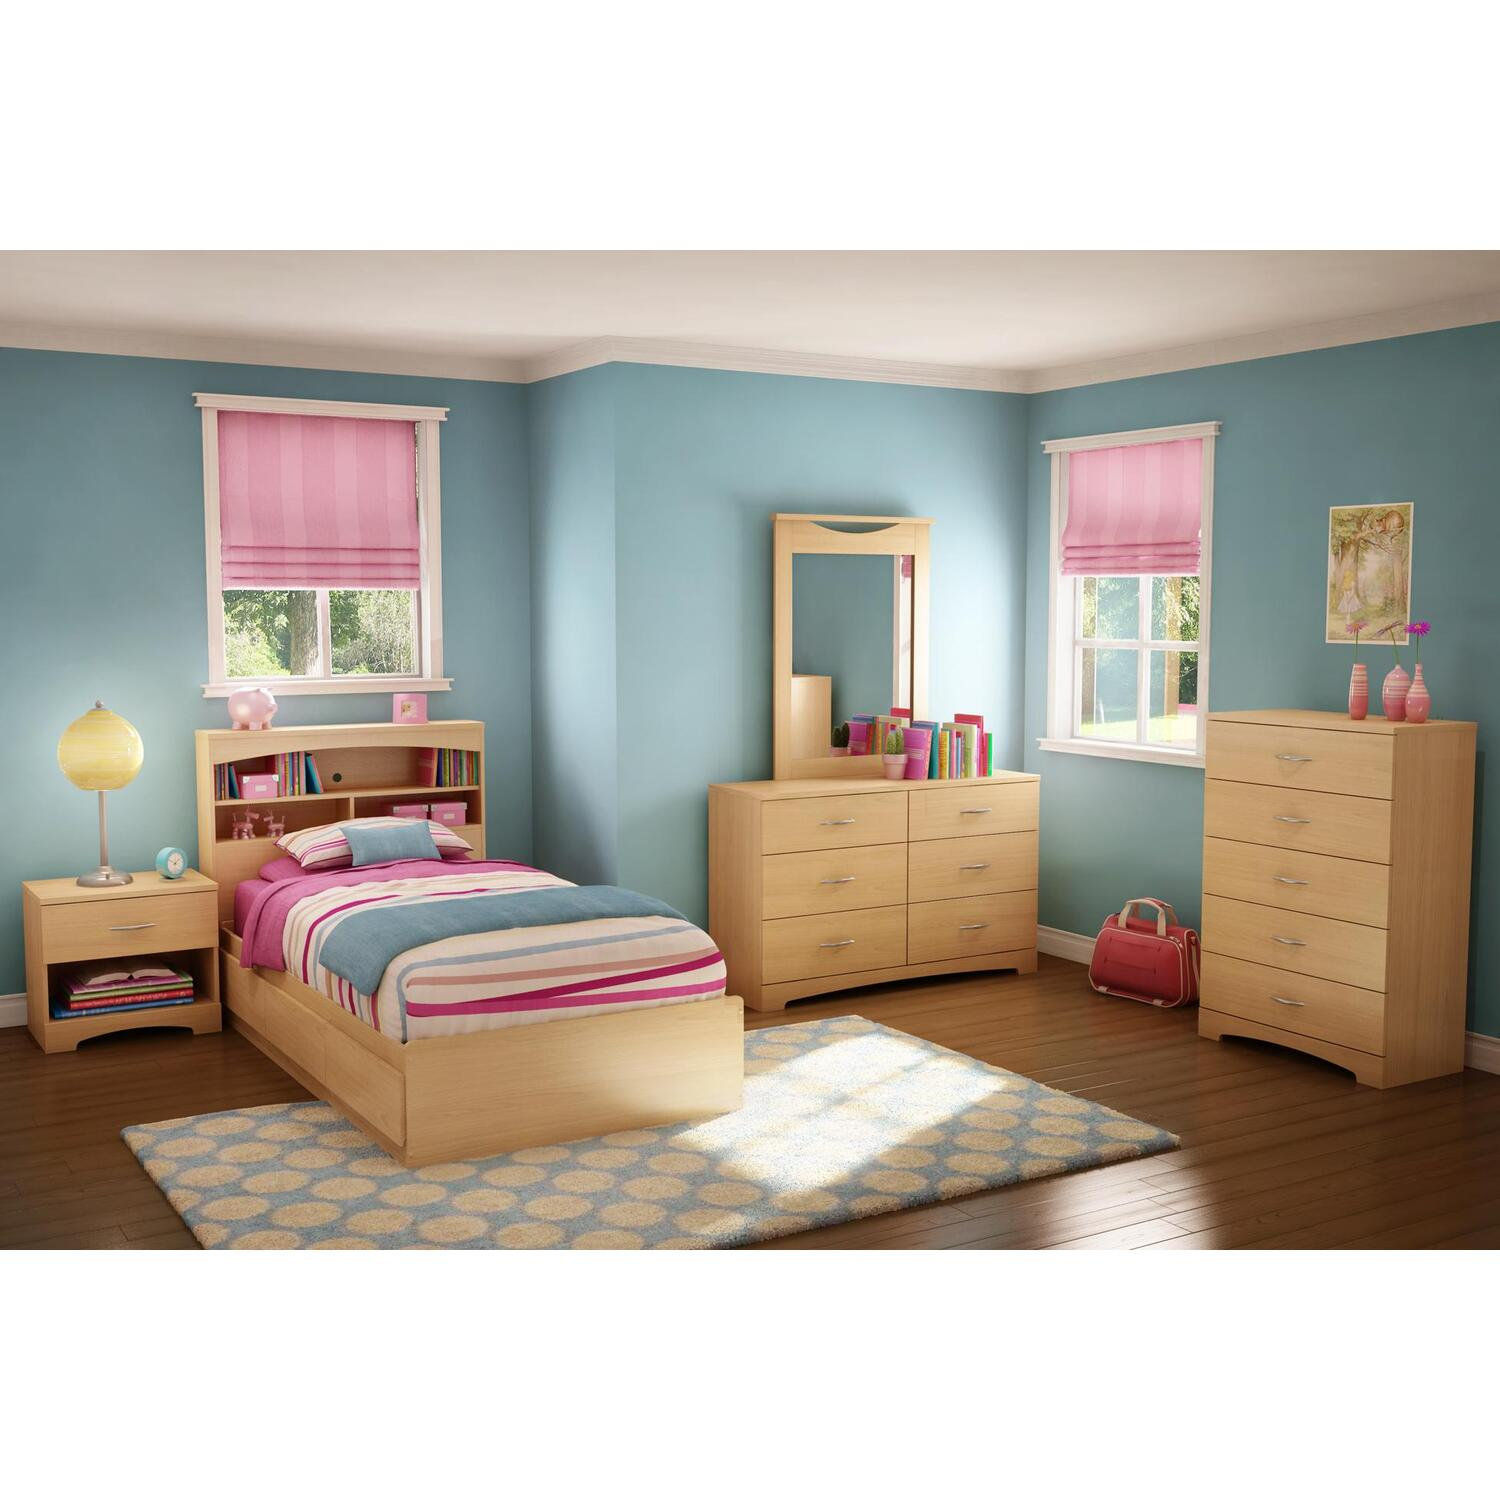 South Shore Copley Twin Mates 6 Piece Bedroom Set by OJ